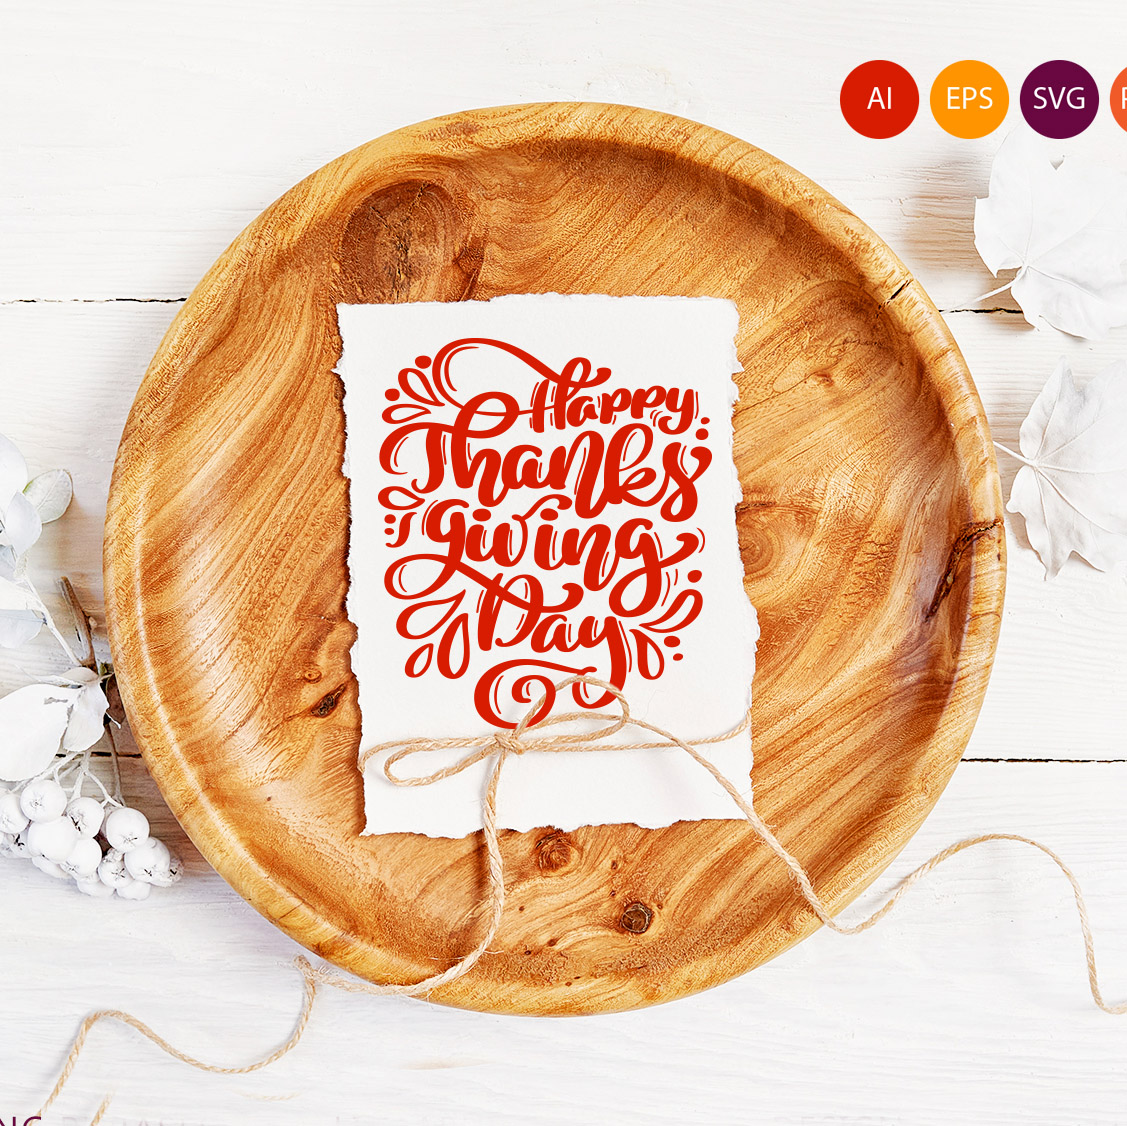 Thanksgiving Cards 2020: 60 Cards to Surprise Your Loved Ones + 30 Thanksgiving Designs for Creating Custom Cards - 600 9